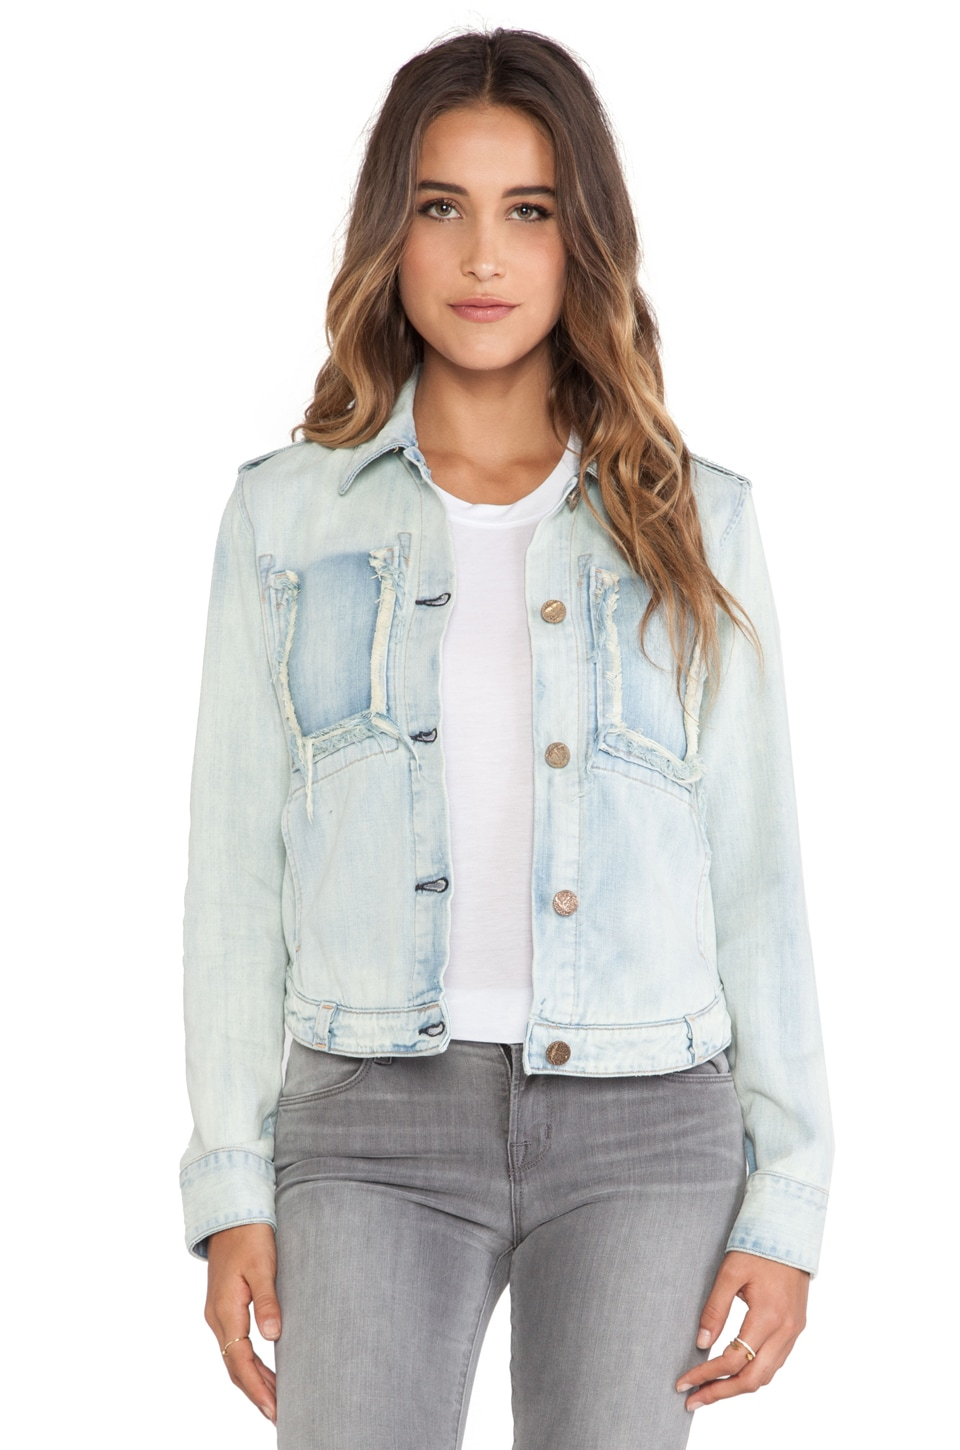 MCGUIRE Fray Pocket Jean Jacket in Glasslands